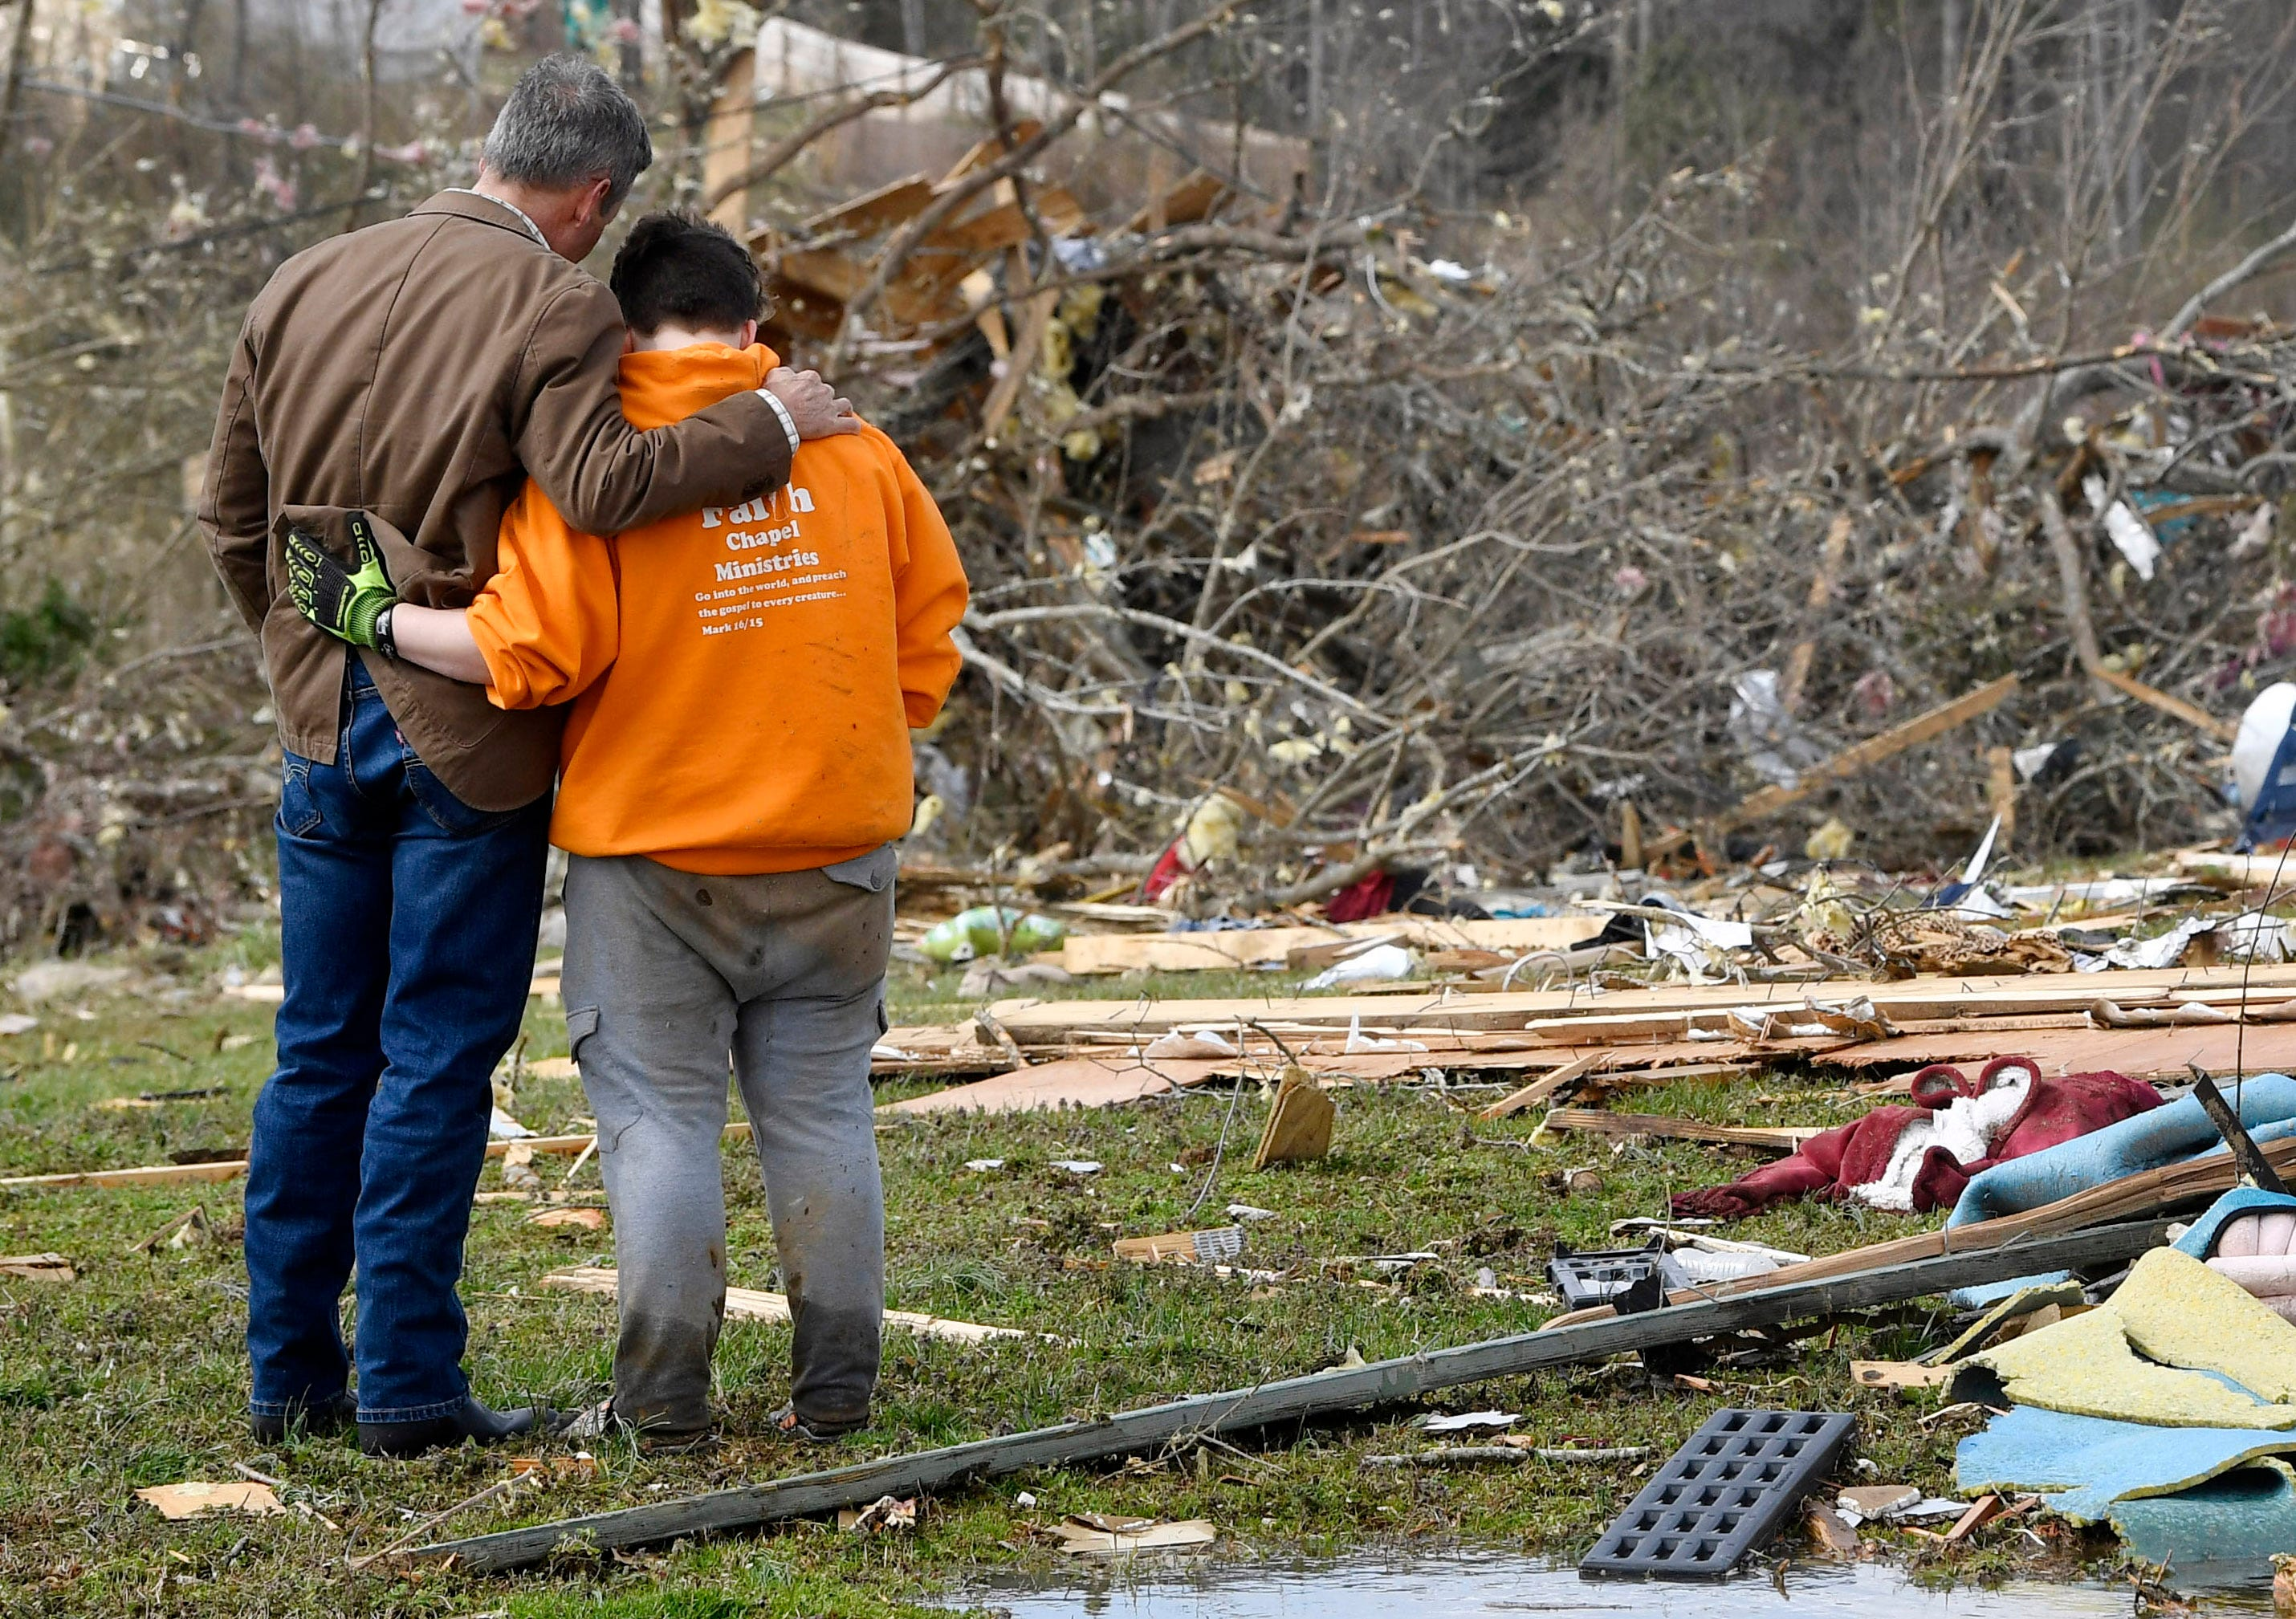 Gov. Bill Lee hugs Putnam County resident Kayla Cowen as he says a prayer with her after she told him she was trying to find something to salvage after losing her apartment and helping to identify a neighbor who was killed by the tornado Tuesday, March 3, 2020.